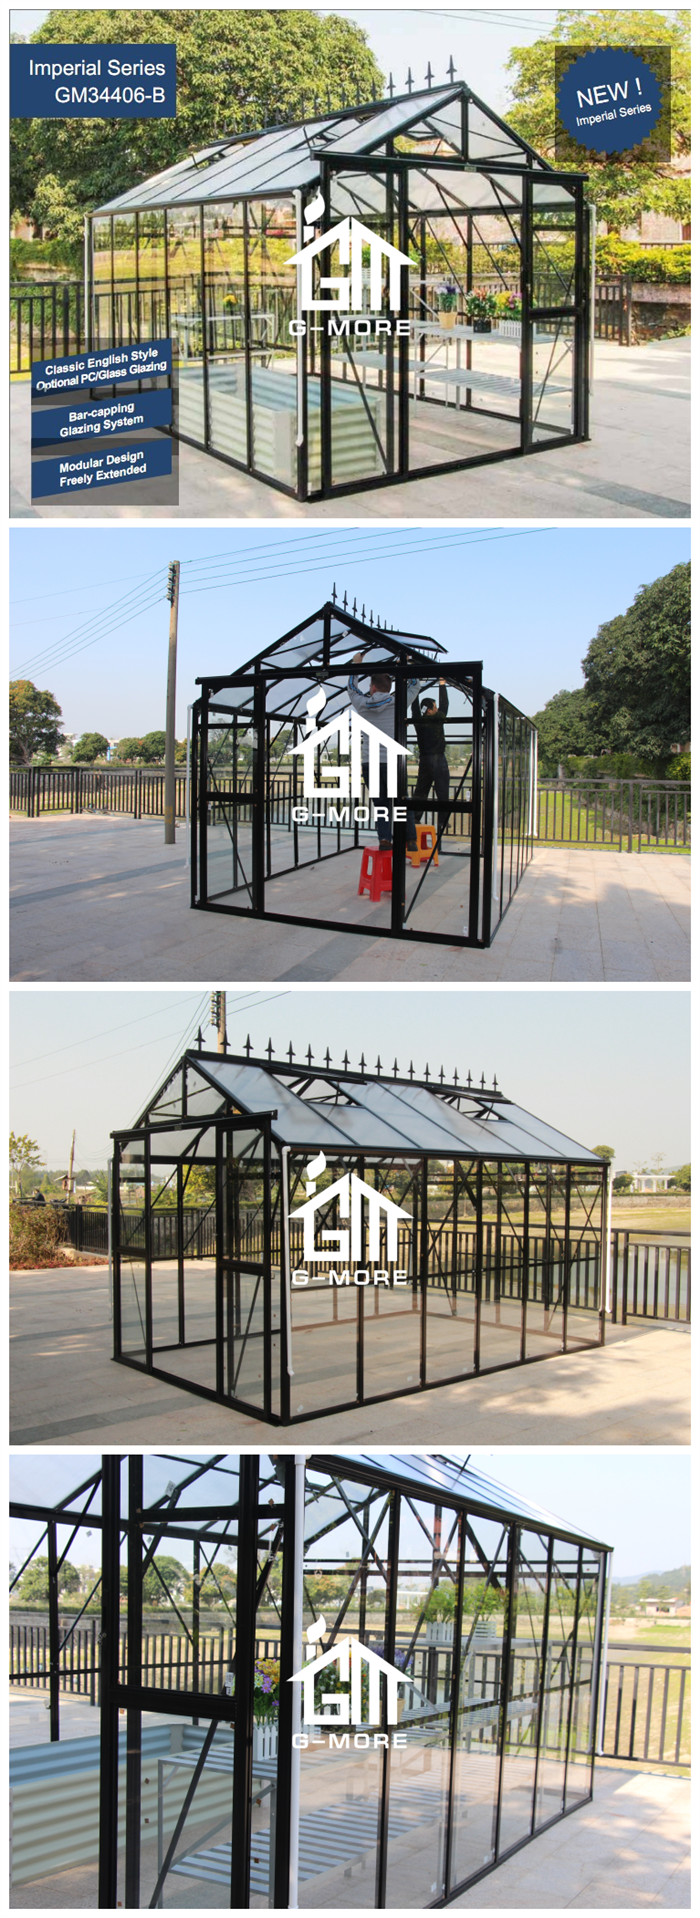 Premium Imperial Series, 8'x12', Optional PC/Glass Glazing, Super Strong Freely Extended Sun Room(GM34406-B)